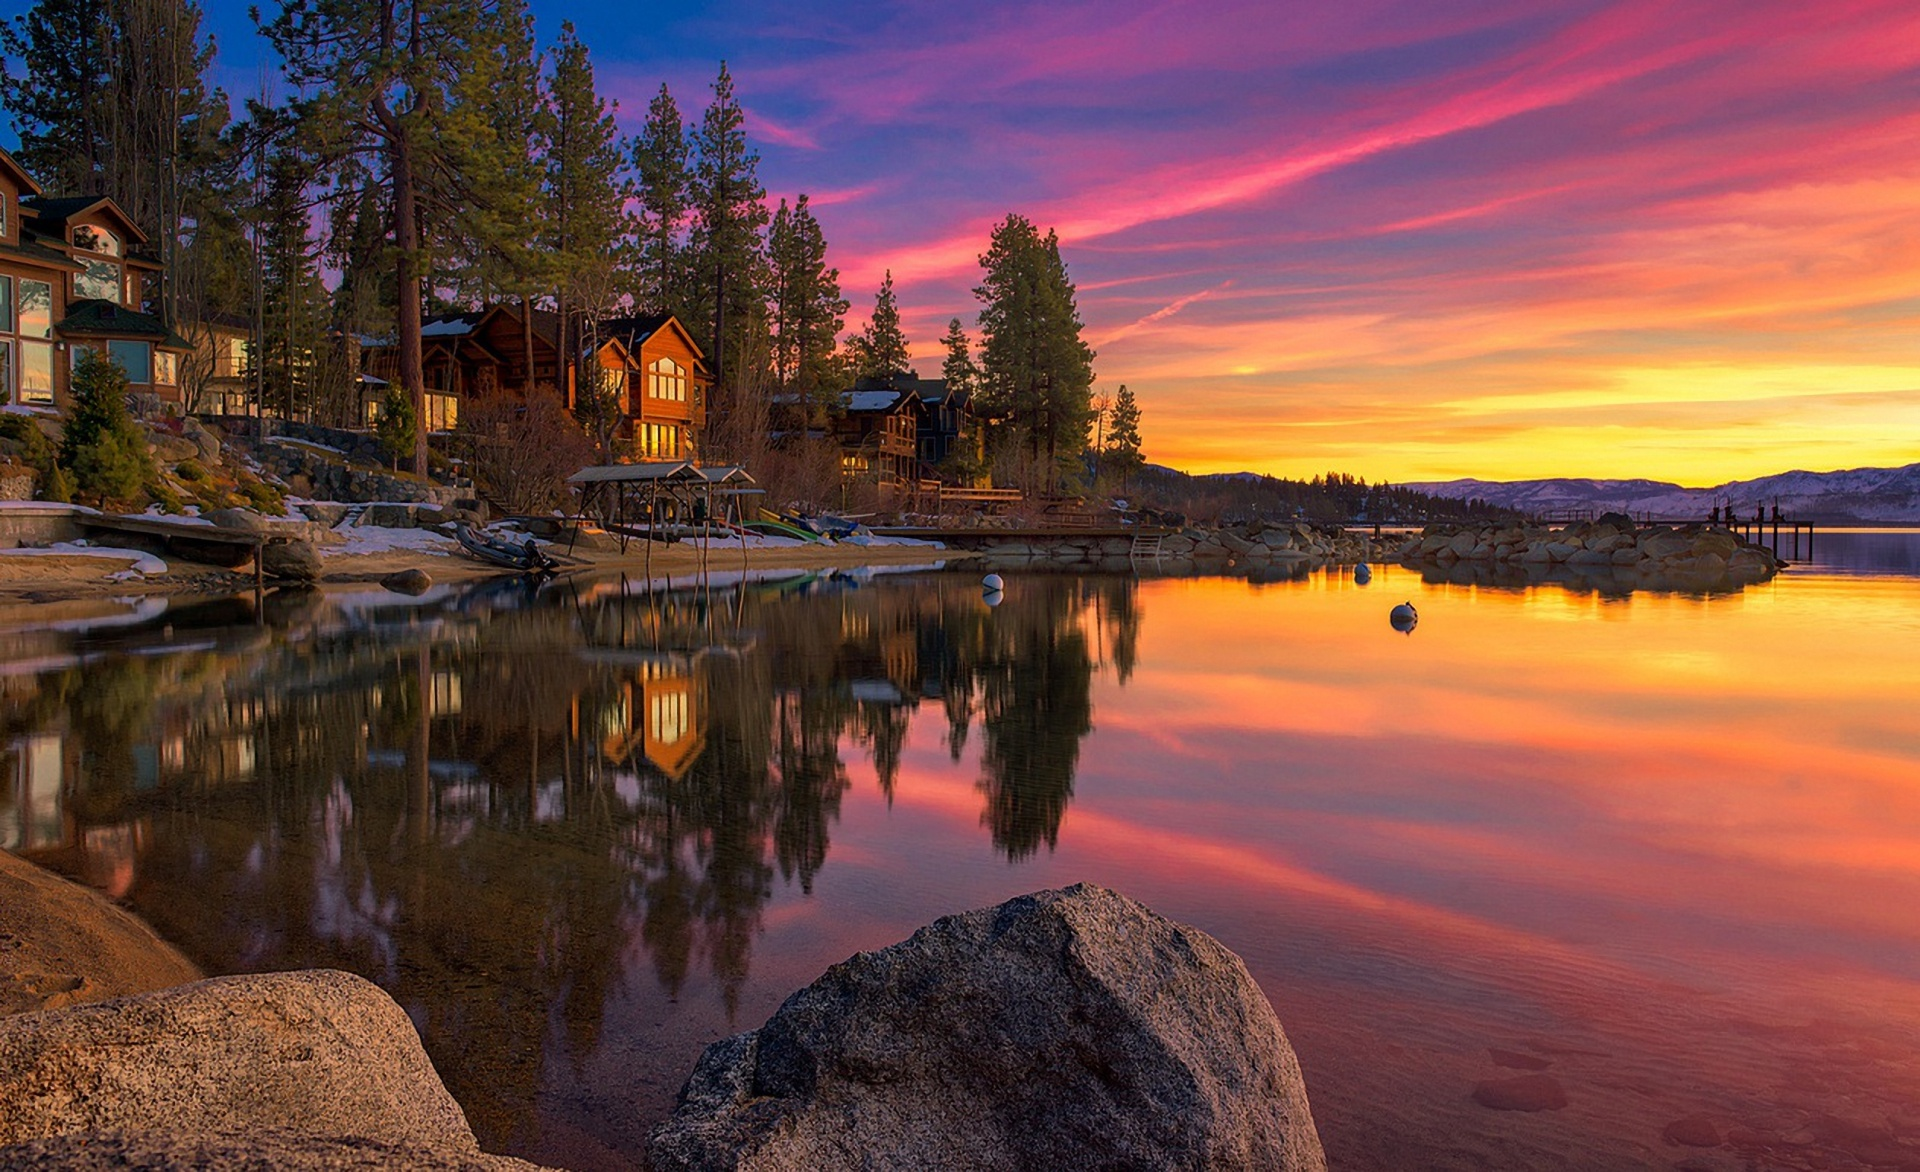 lake house rocks sunset sky clouds Lake Tahoe United States wallpaper 1920x1172